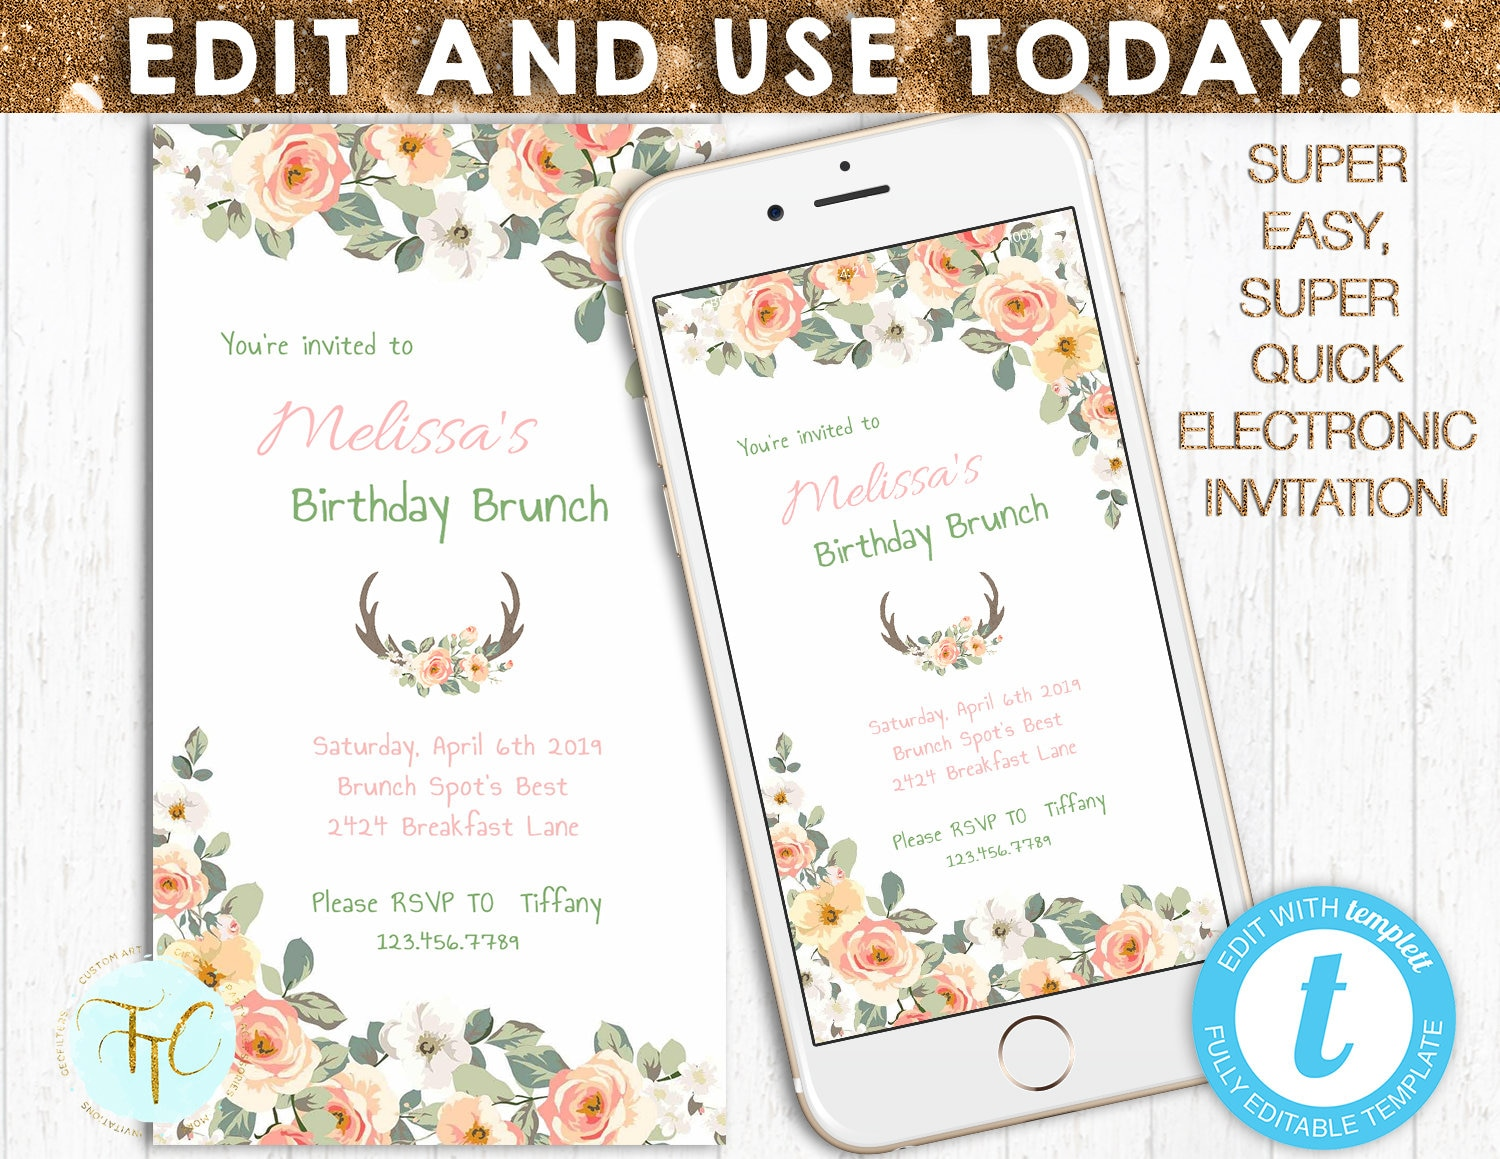 EDITABLE DIGITAL INVITATION Electronic Birthday Brunch | Etsy